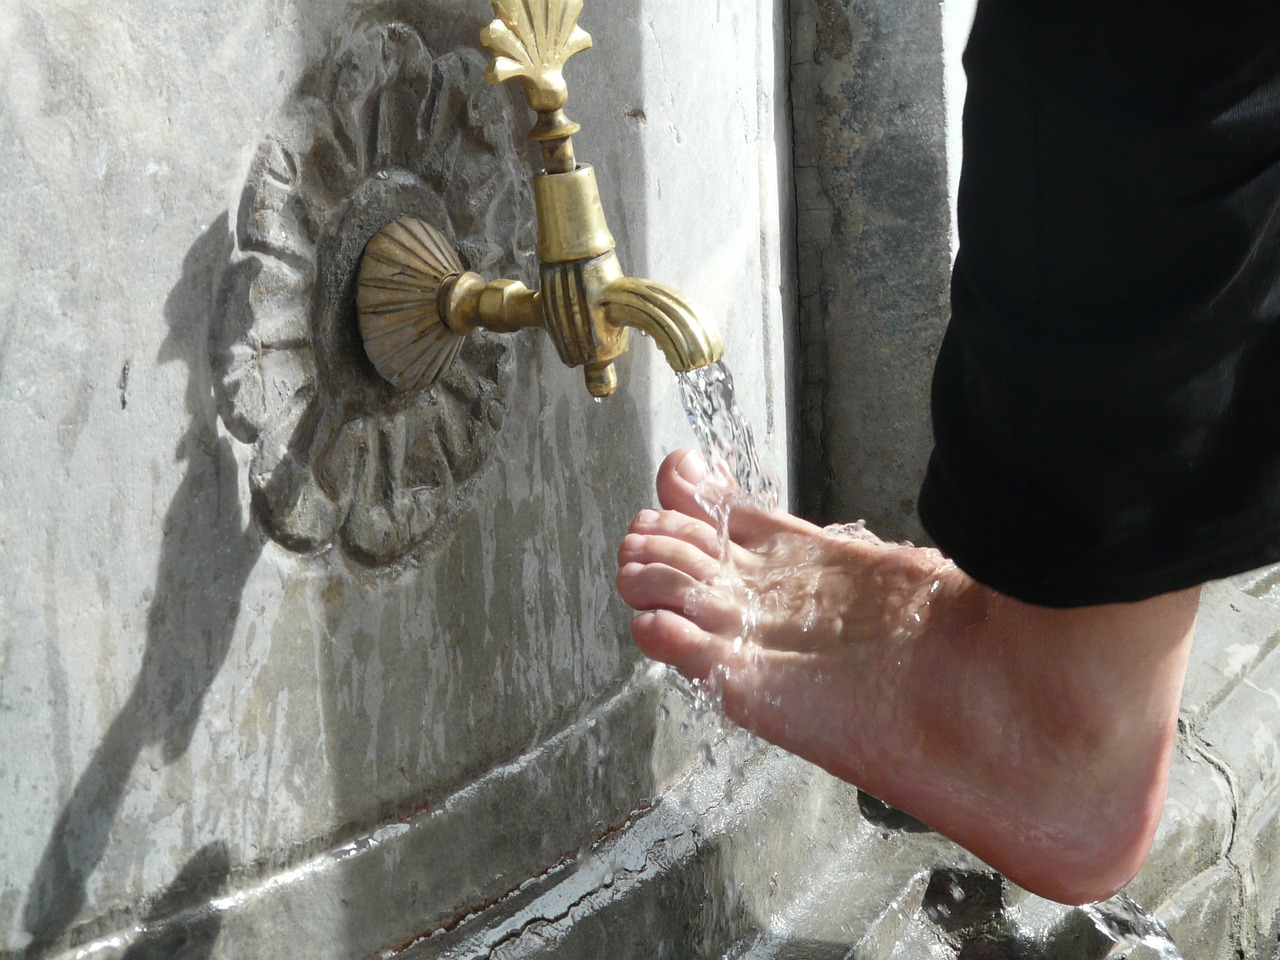 washing,ritual,foot care,washing feet,islam,water,foot,fountain,faucet,ten,gilded,free pictures, free photos, free images, royalty free, free illustrations, public domain